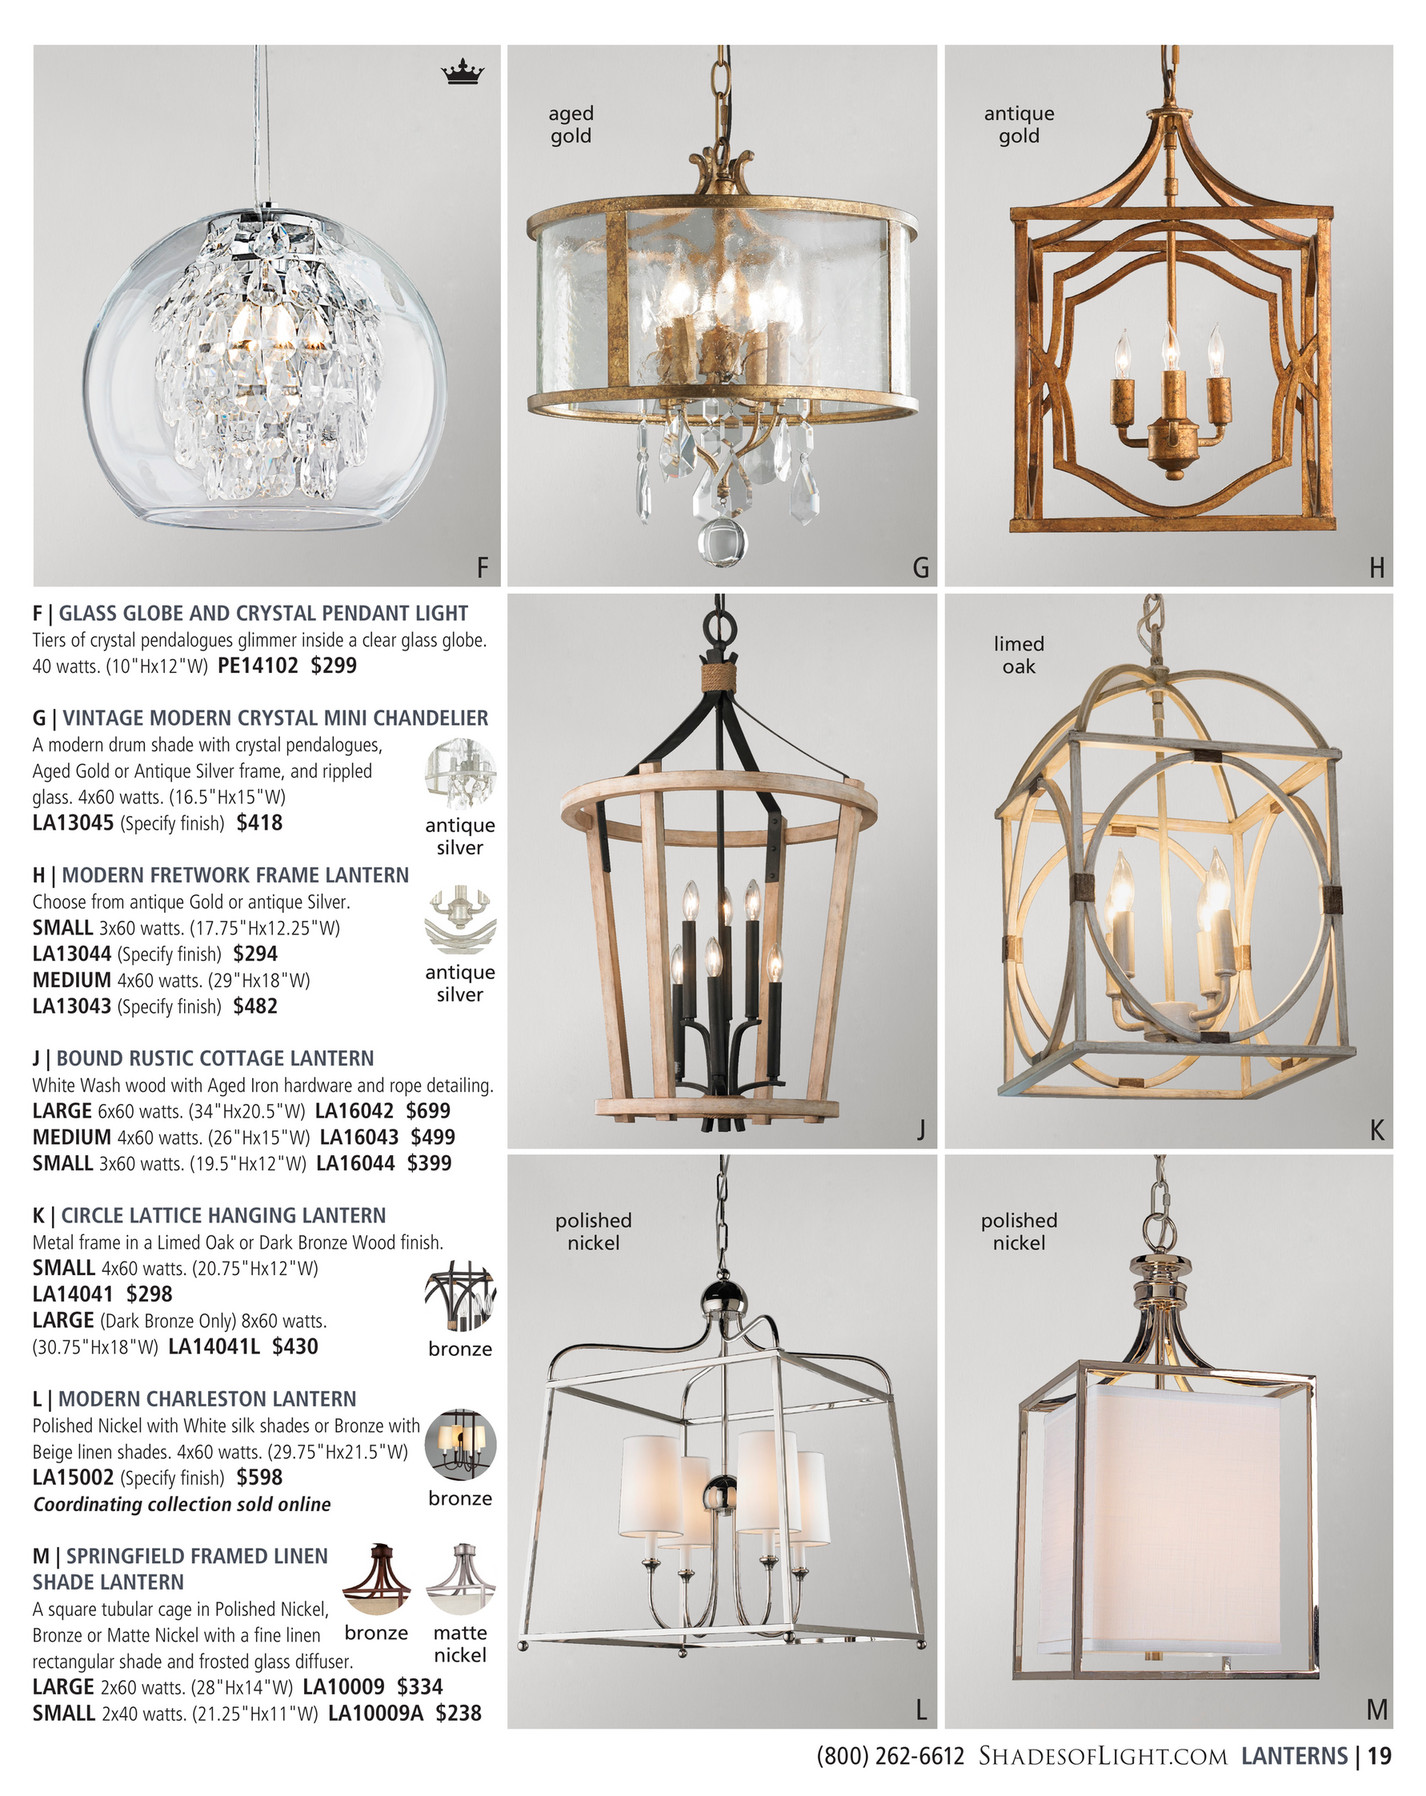 White washed wood sphere chandelier chandeliers by shades of light -  Wood Chandelier Features A Whitewashed Finish And Glass 800 262 6612 Shadesoflight Com Lanterns 19